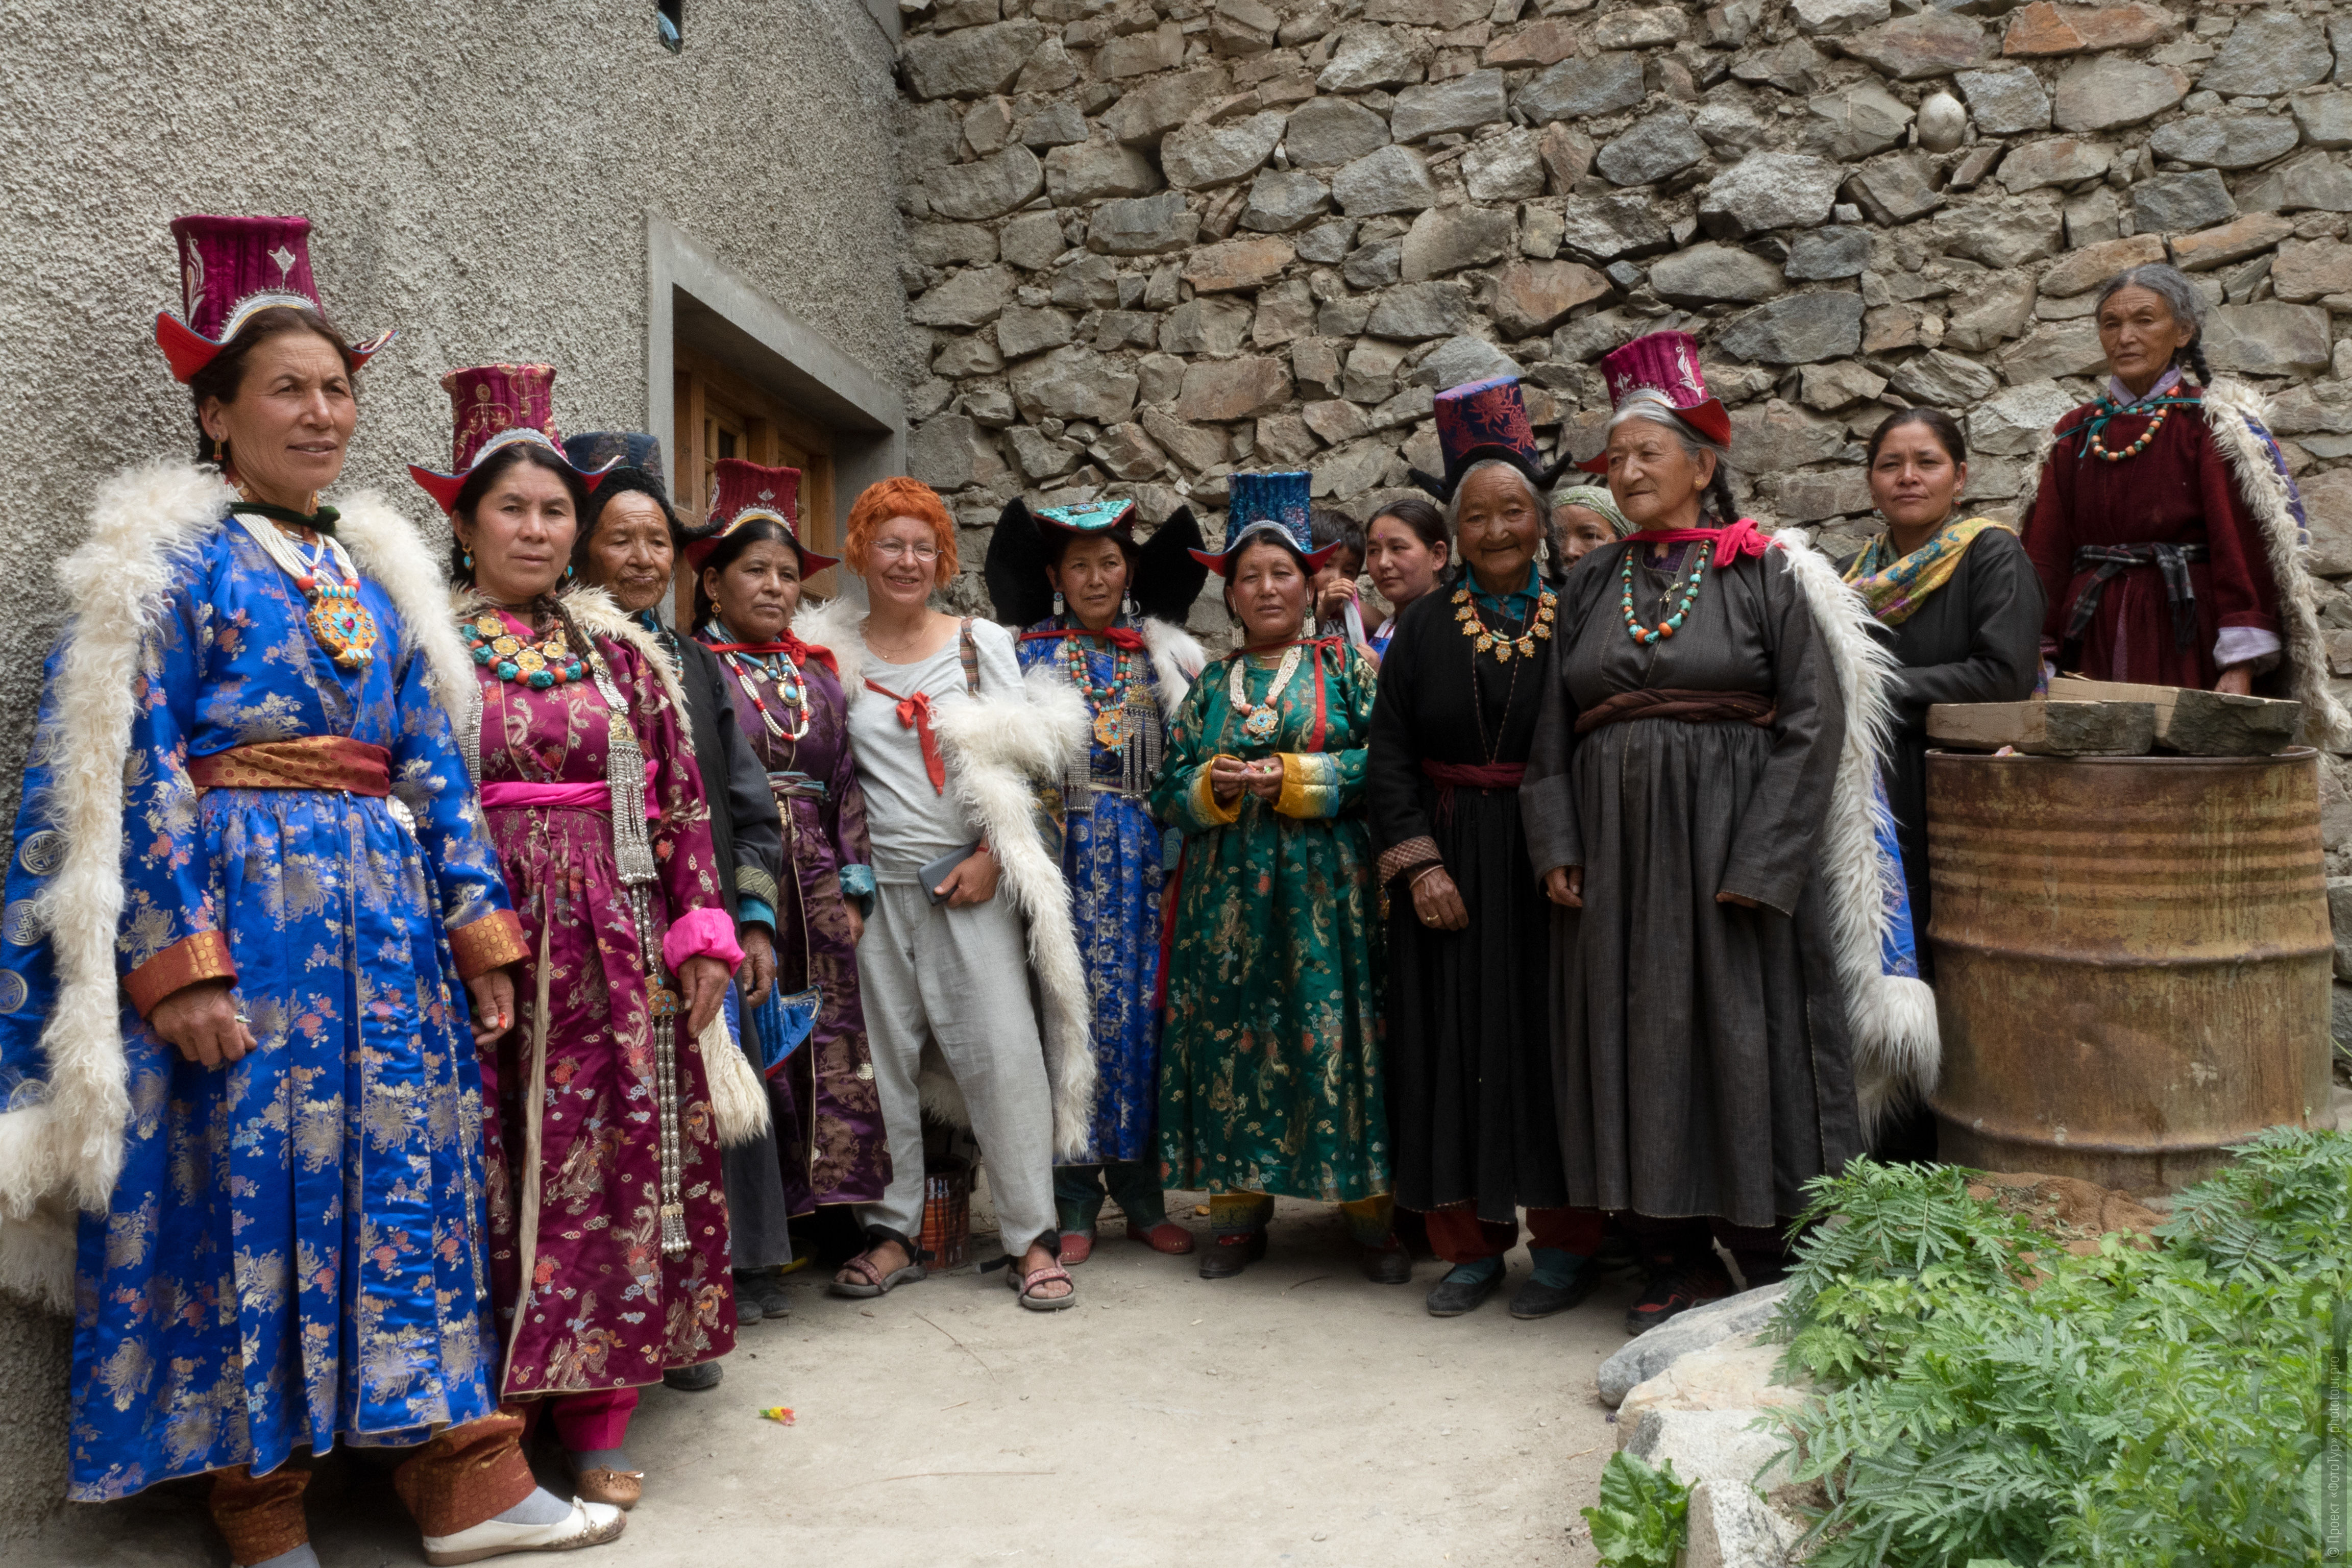 The ladies of the village Donkar. Ladakh Tour for women, travel and acquaintance with the culture of Tibetan matriarchy.